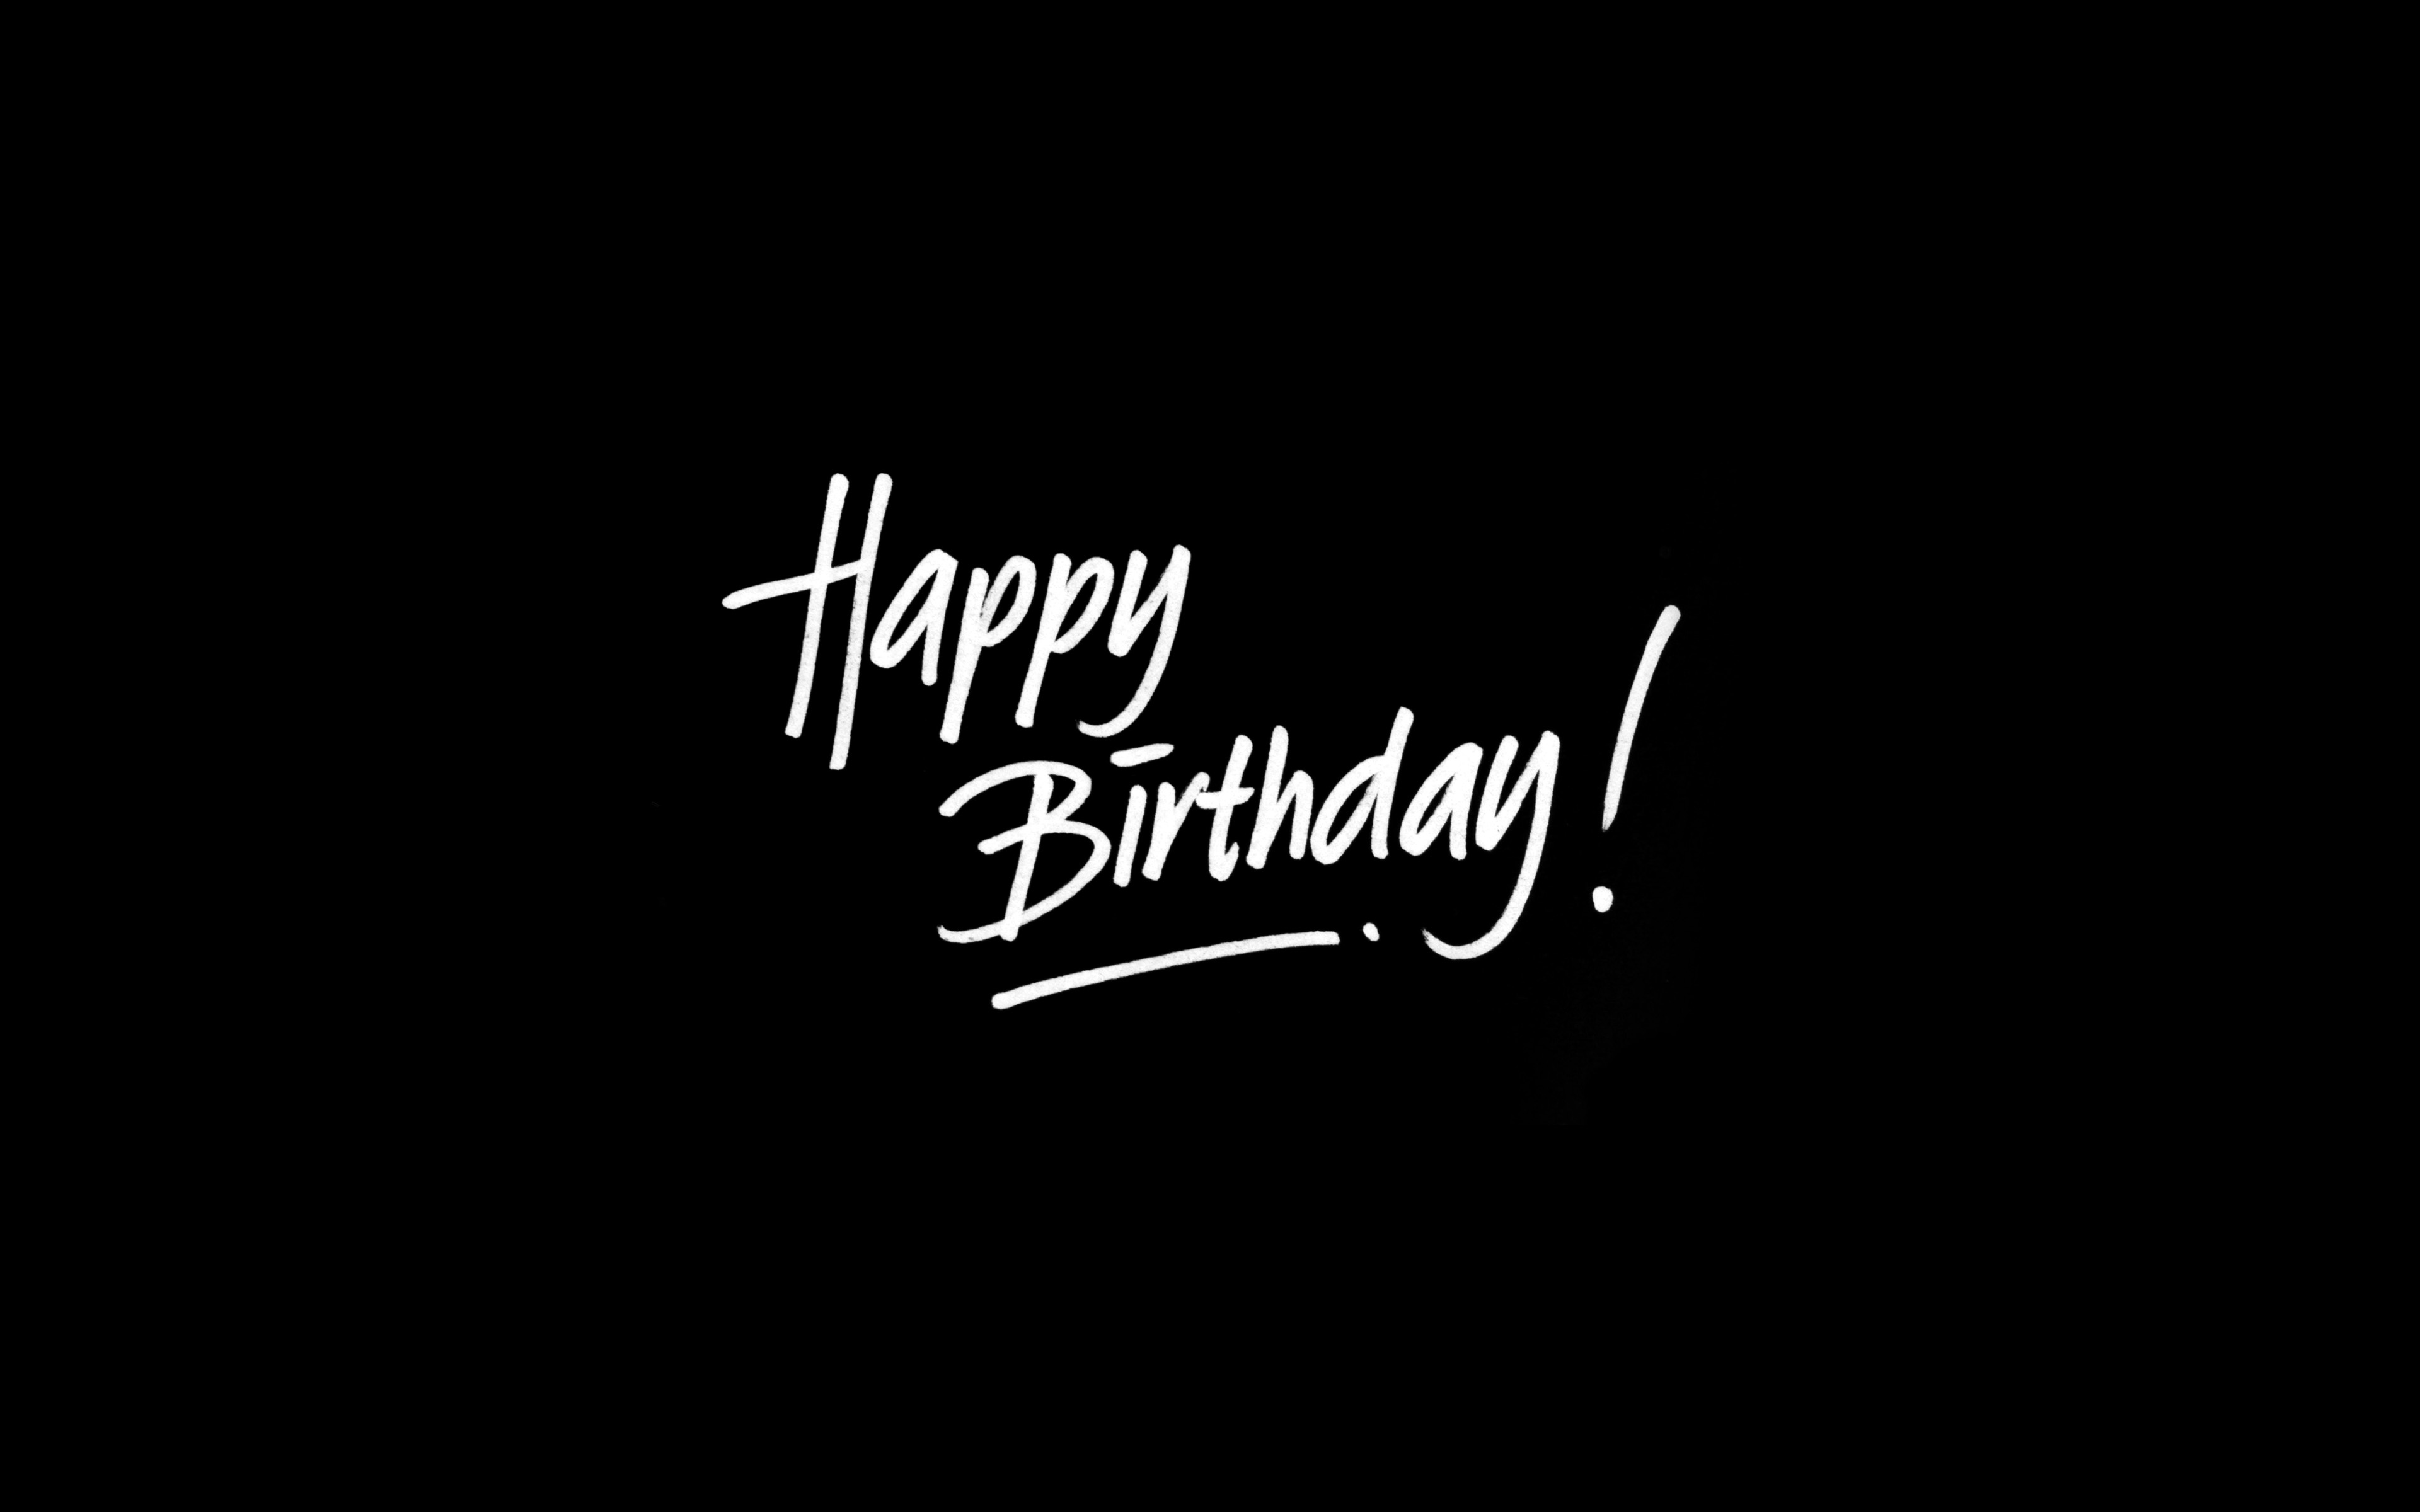 Quote Wallpaper For Sony Xperia Ap54 Happy Birthday Dark Event Writing Wallpaper